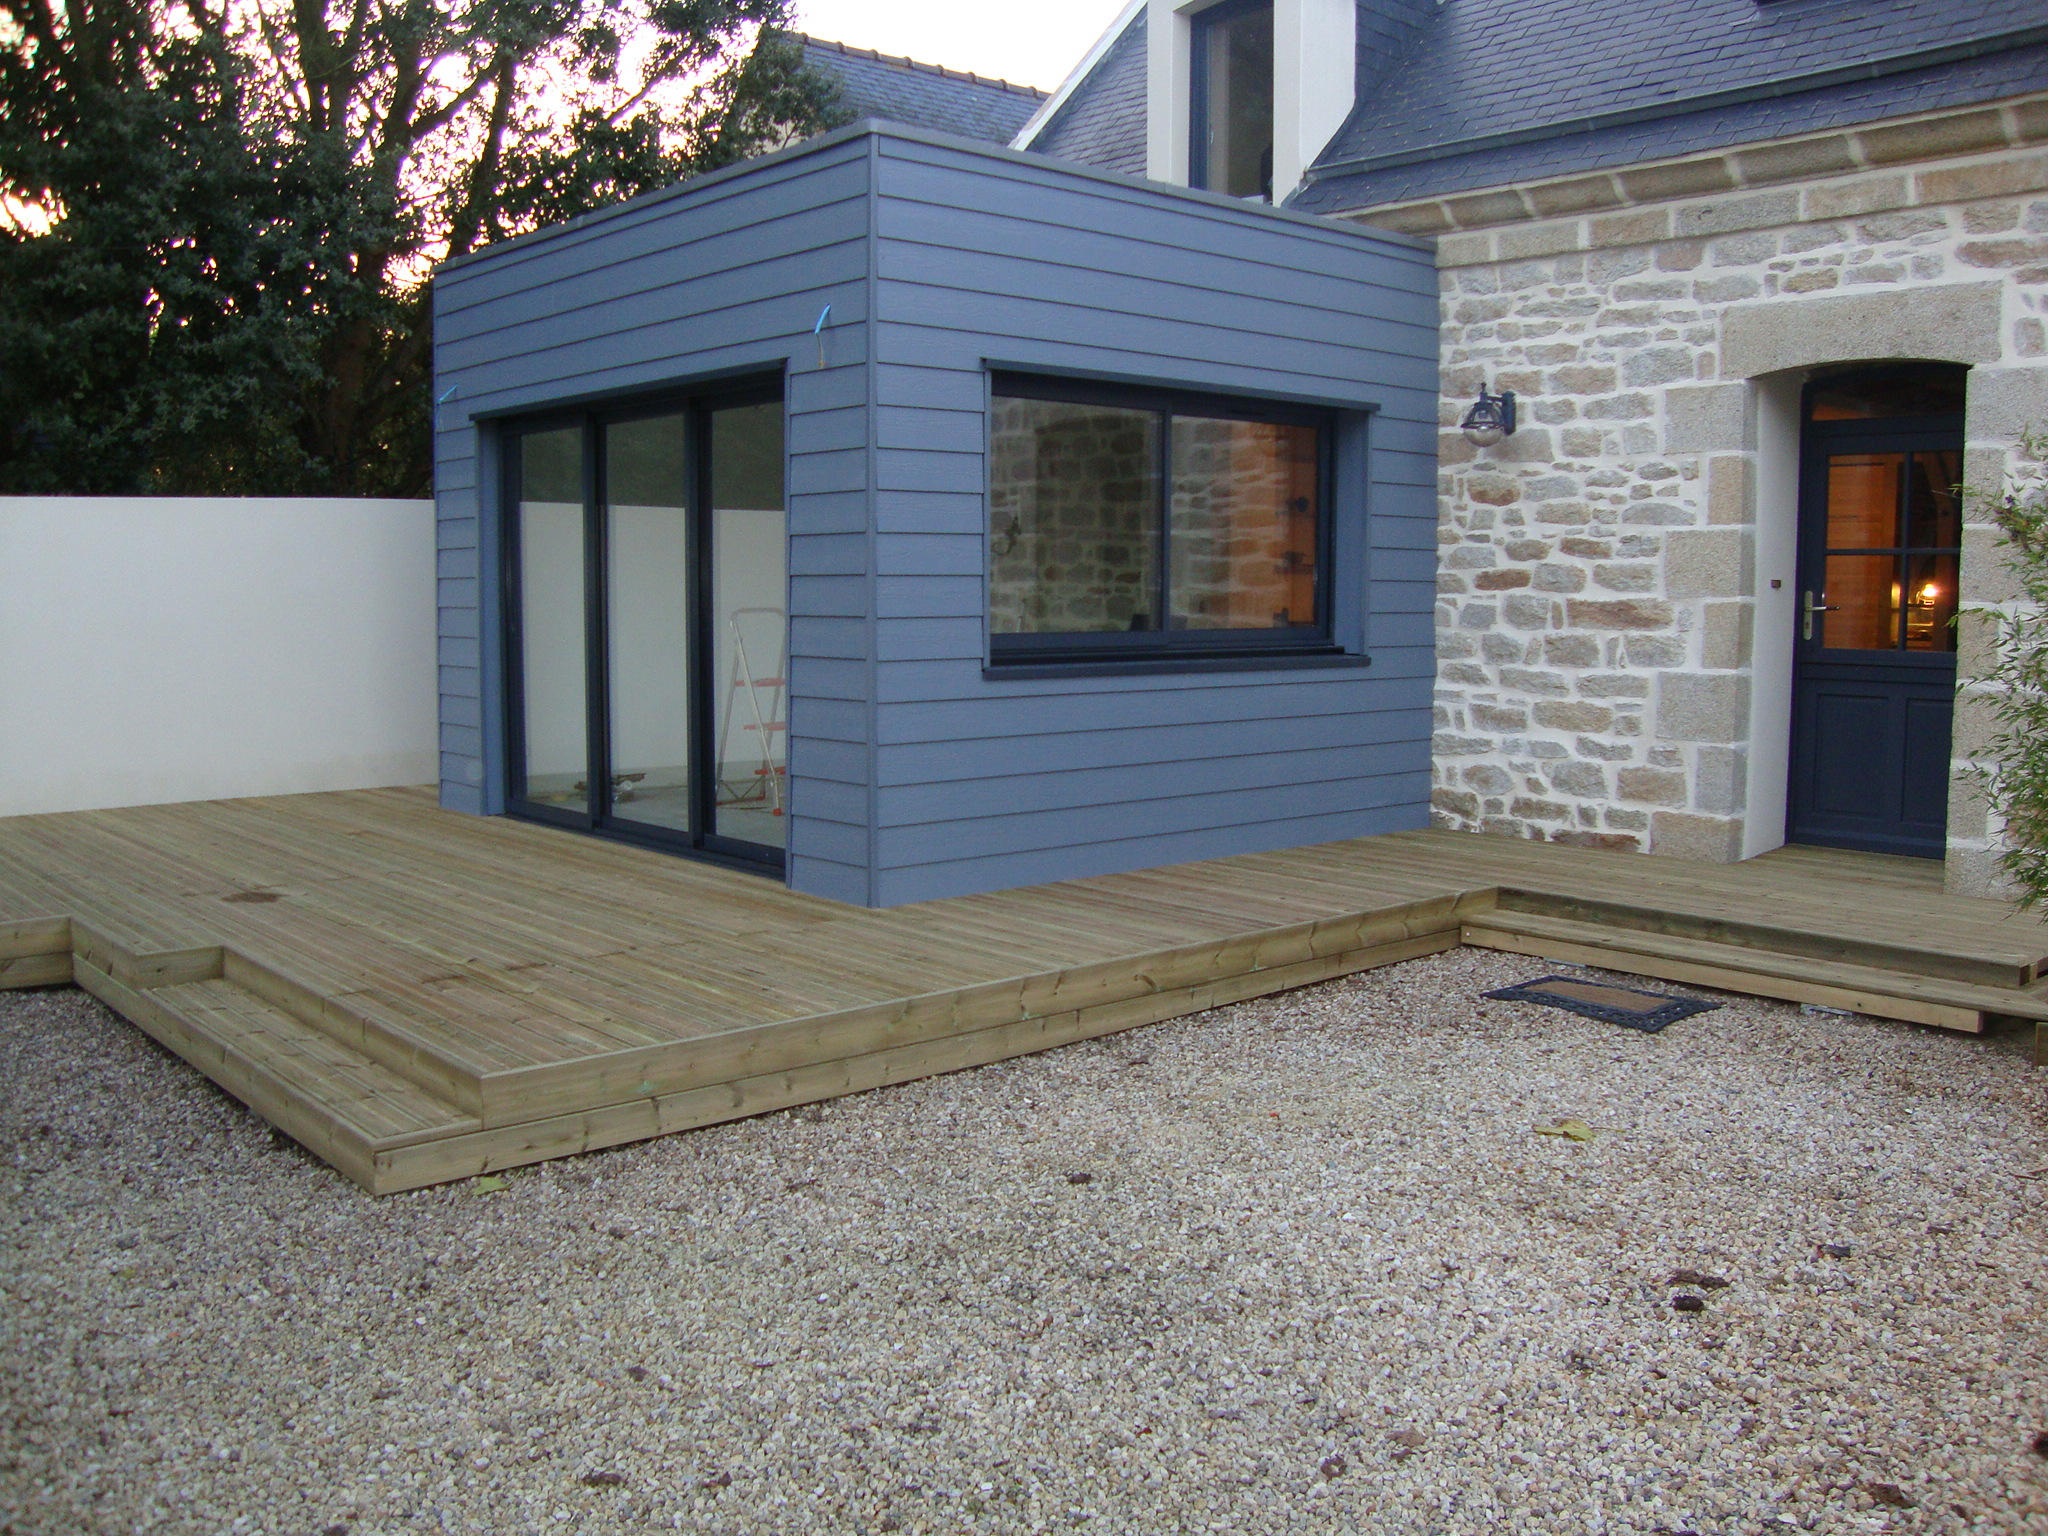 Menuiserie ossature et terrasse bois asm cr ation for Pose pare pluie bardage